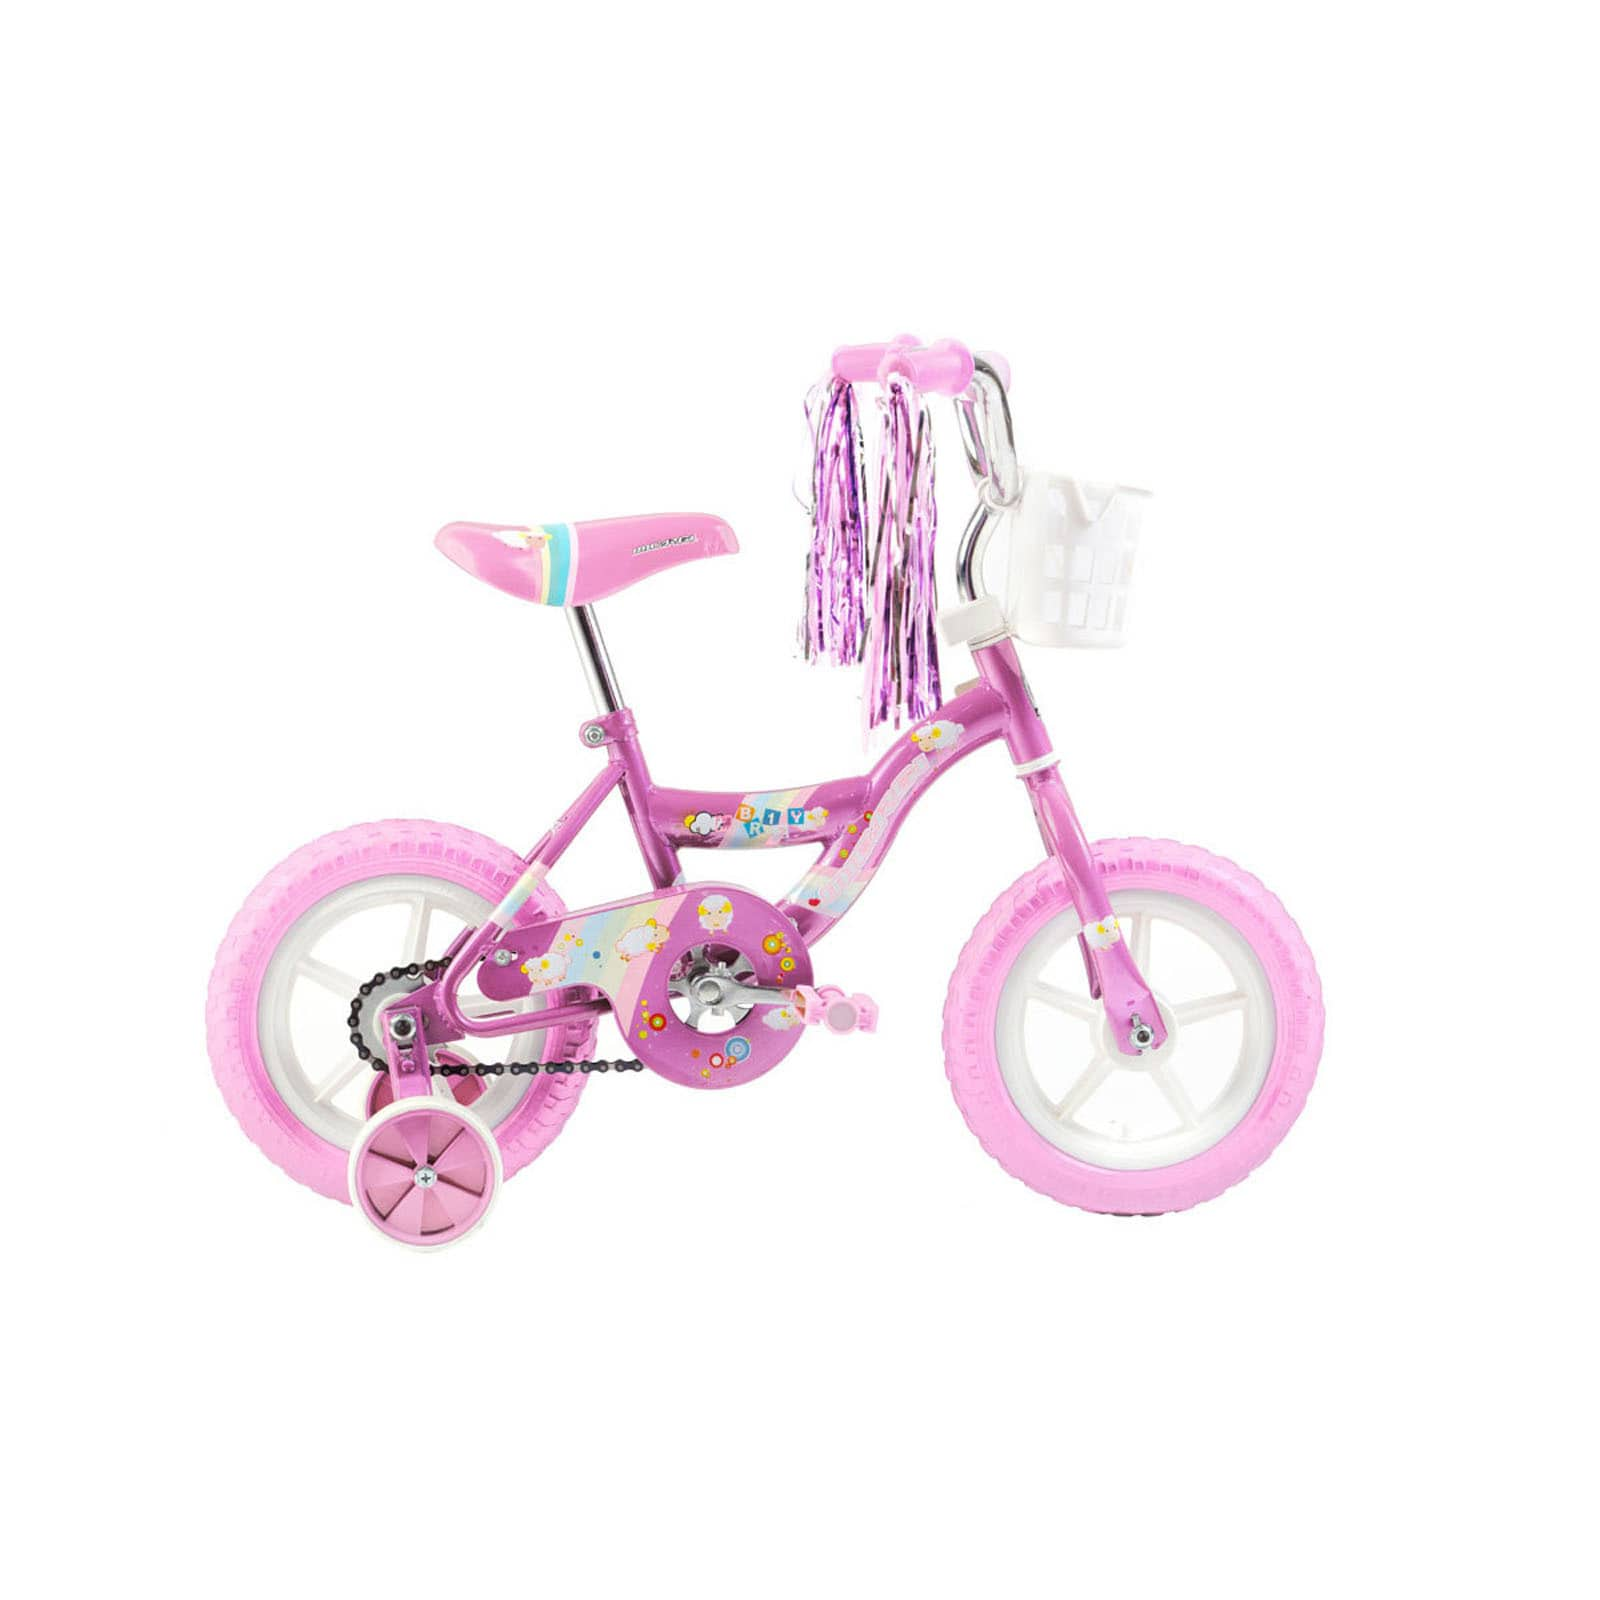 MICARGI INDUSTRIES Micargi Kids Pink Girls 12-inch Bicycle with Training Wheels and Front... by Overstock